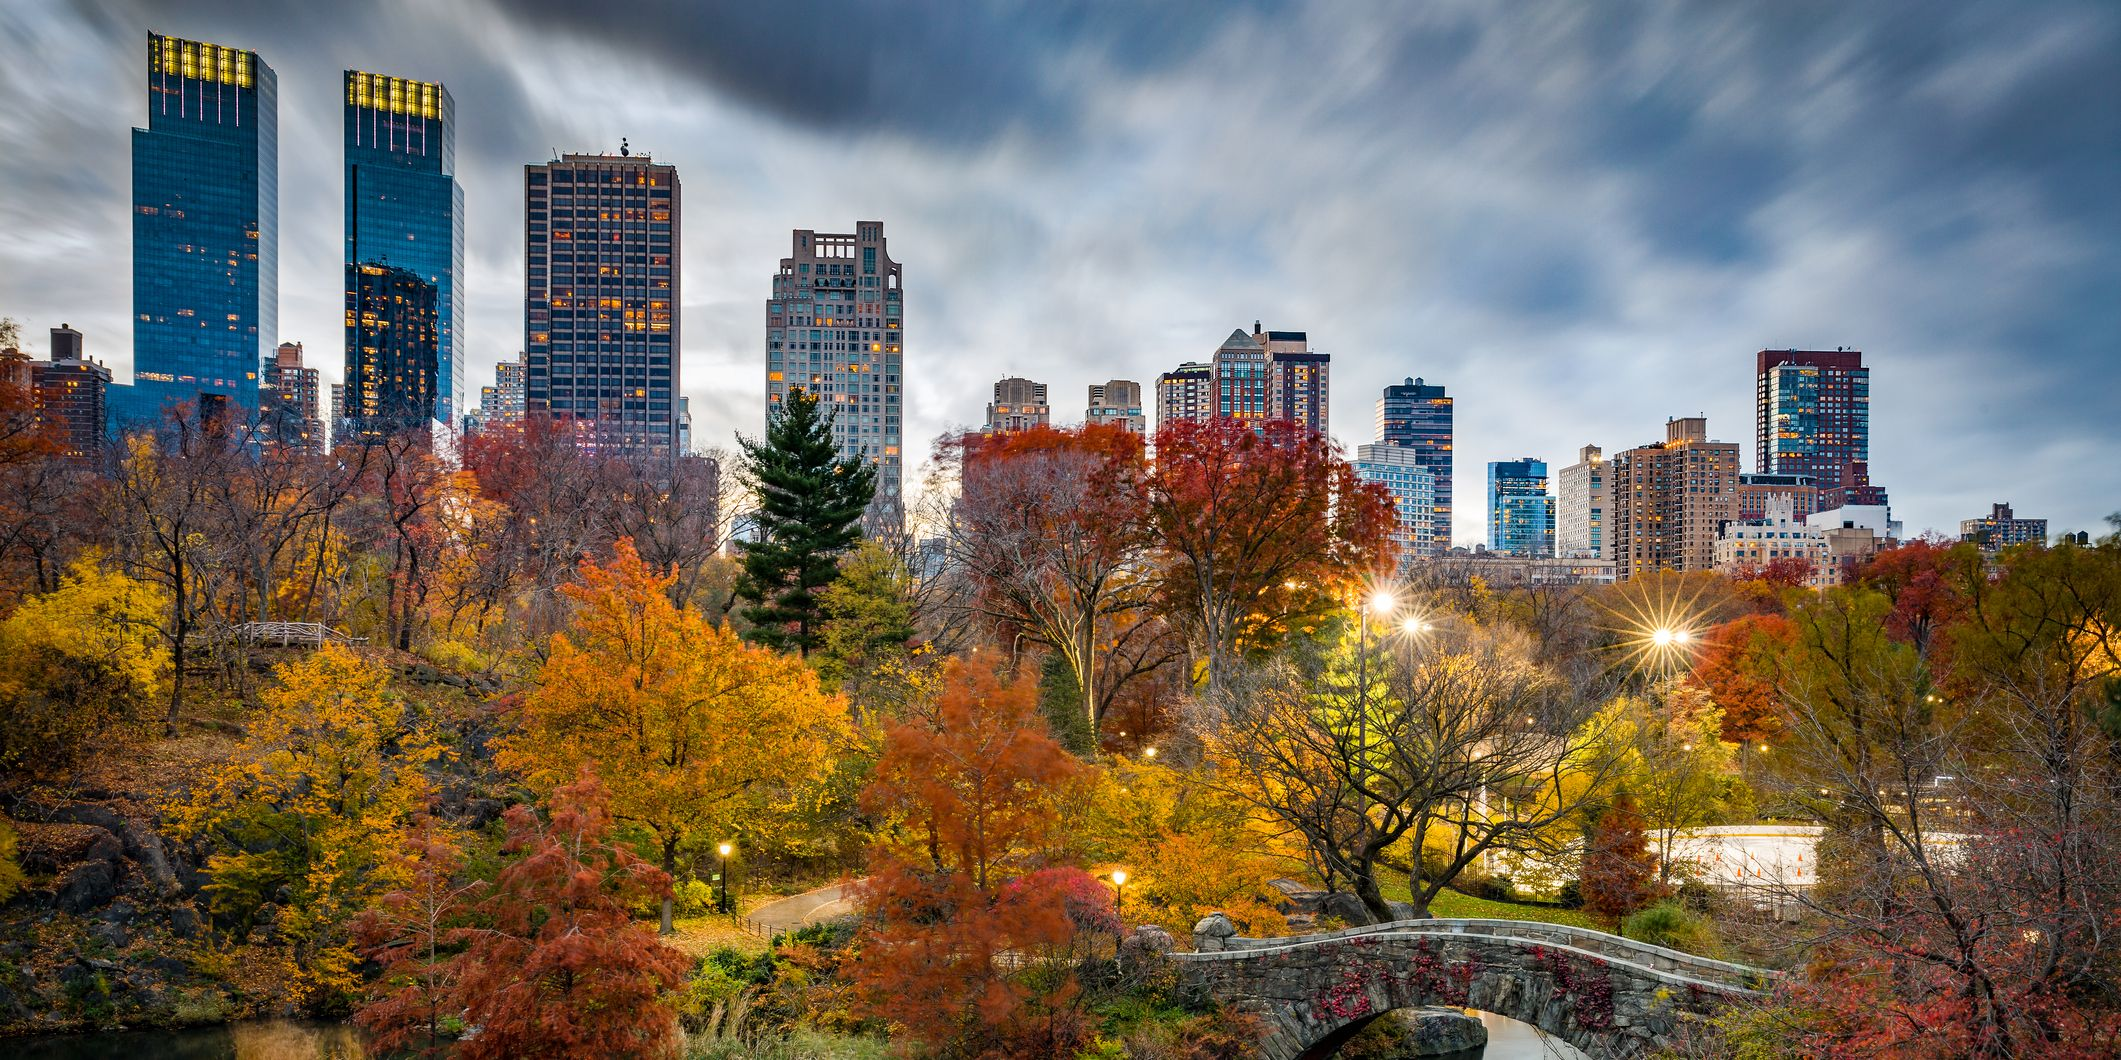 New York Central Park during Autumn